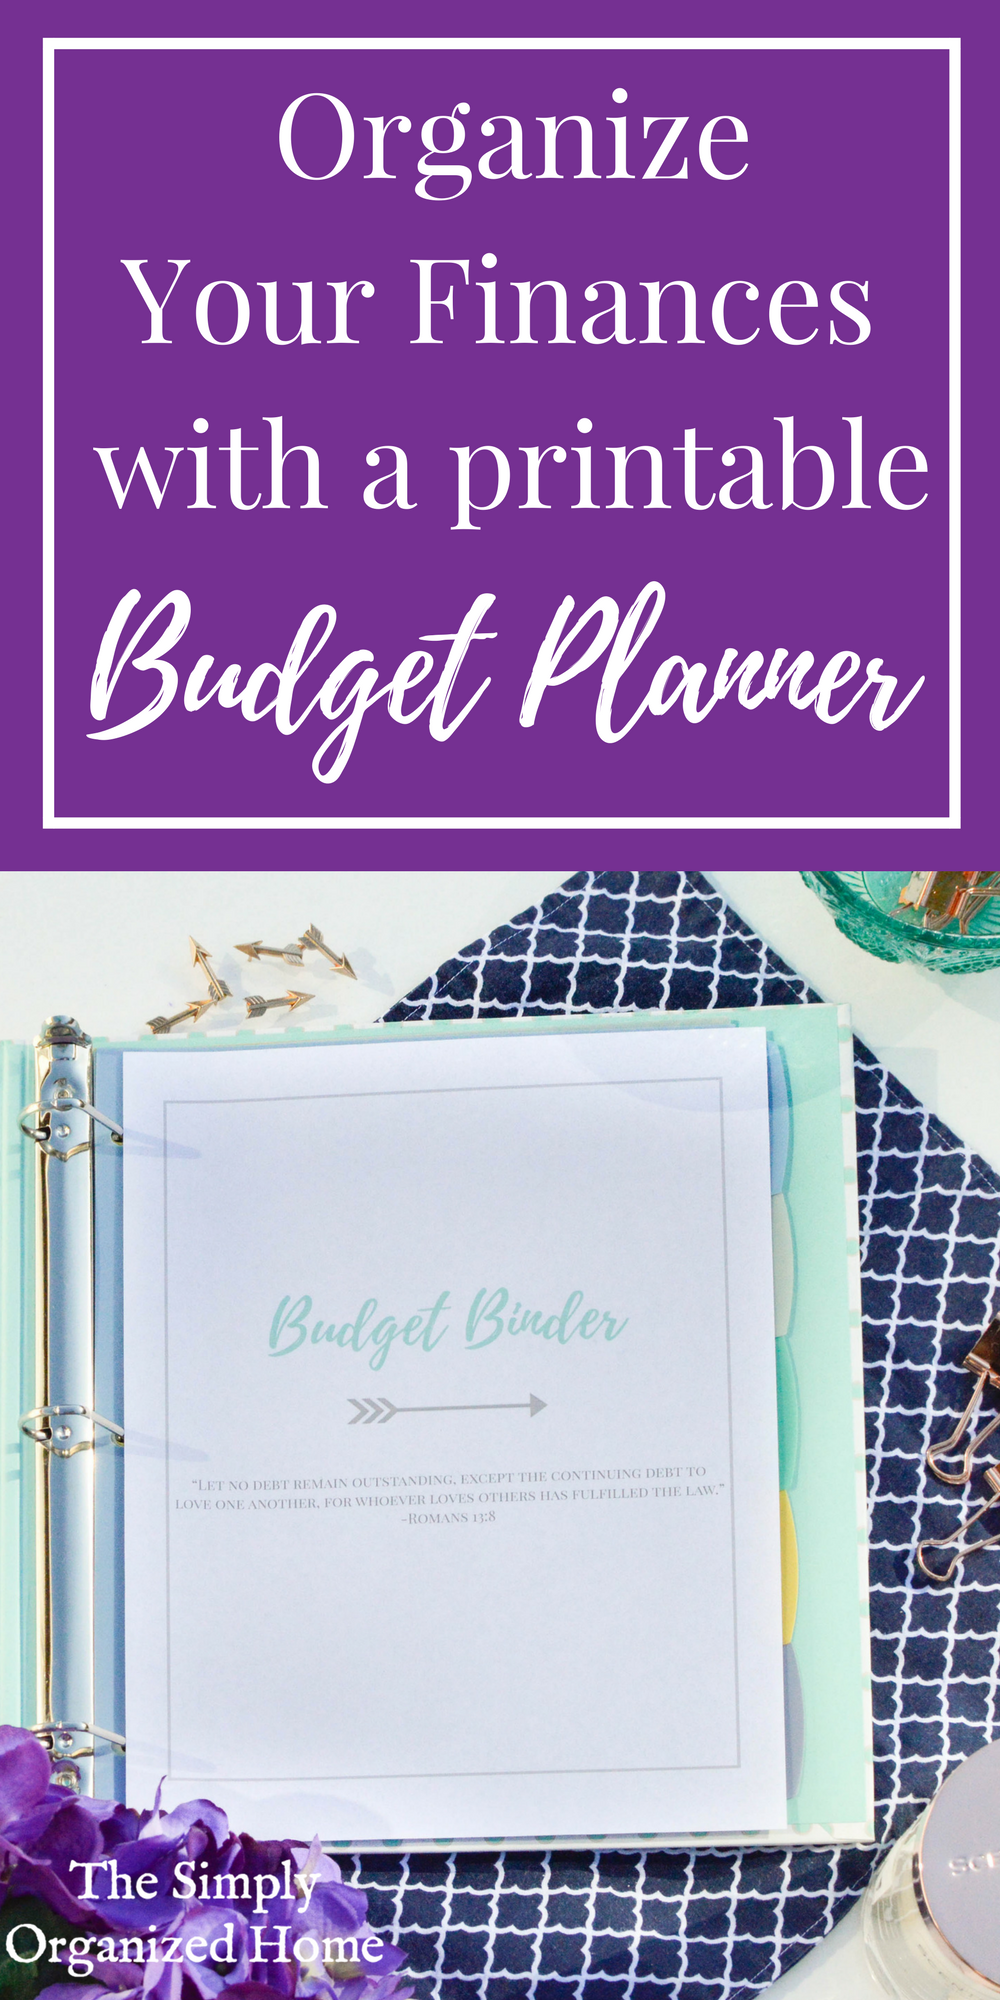 photo relating to Budget Planner Printable named Prepare Your Spending budget with a Printable Funds Planner - The